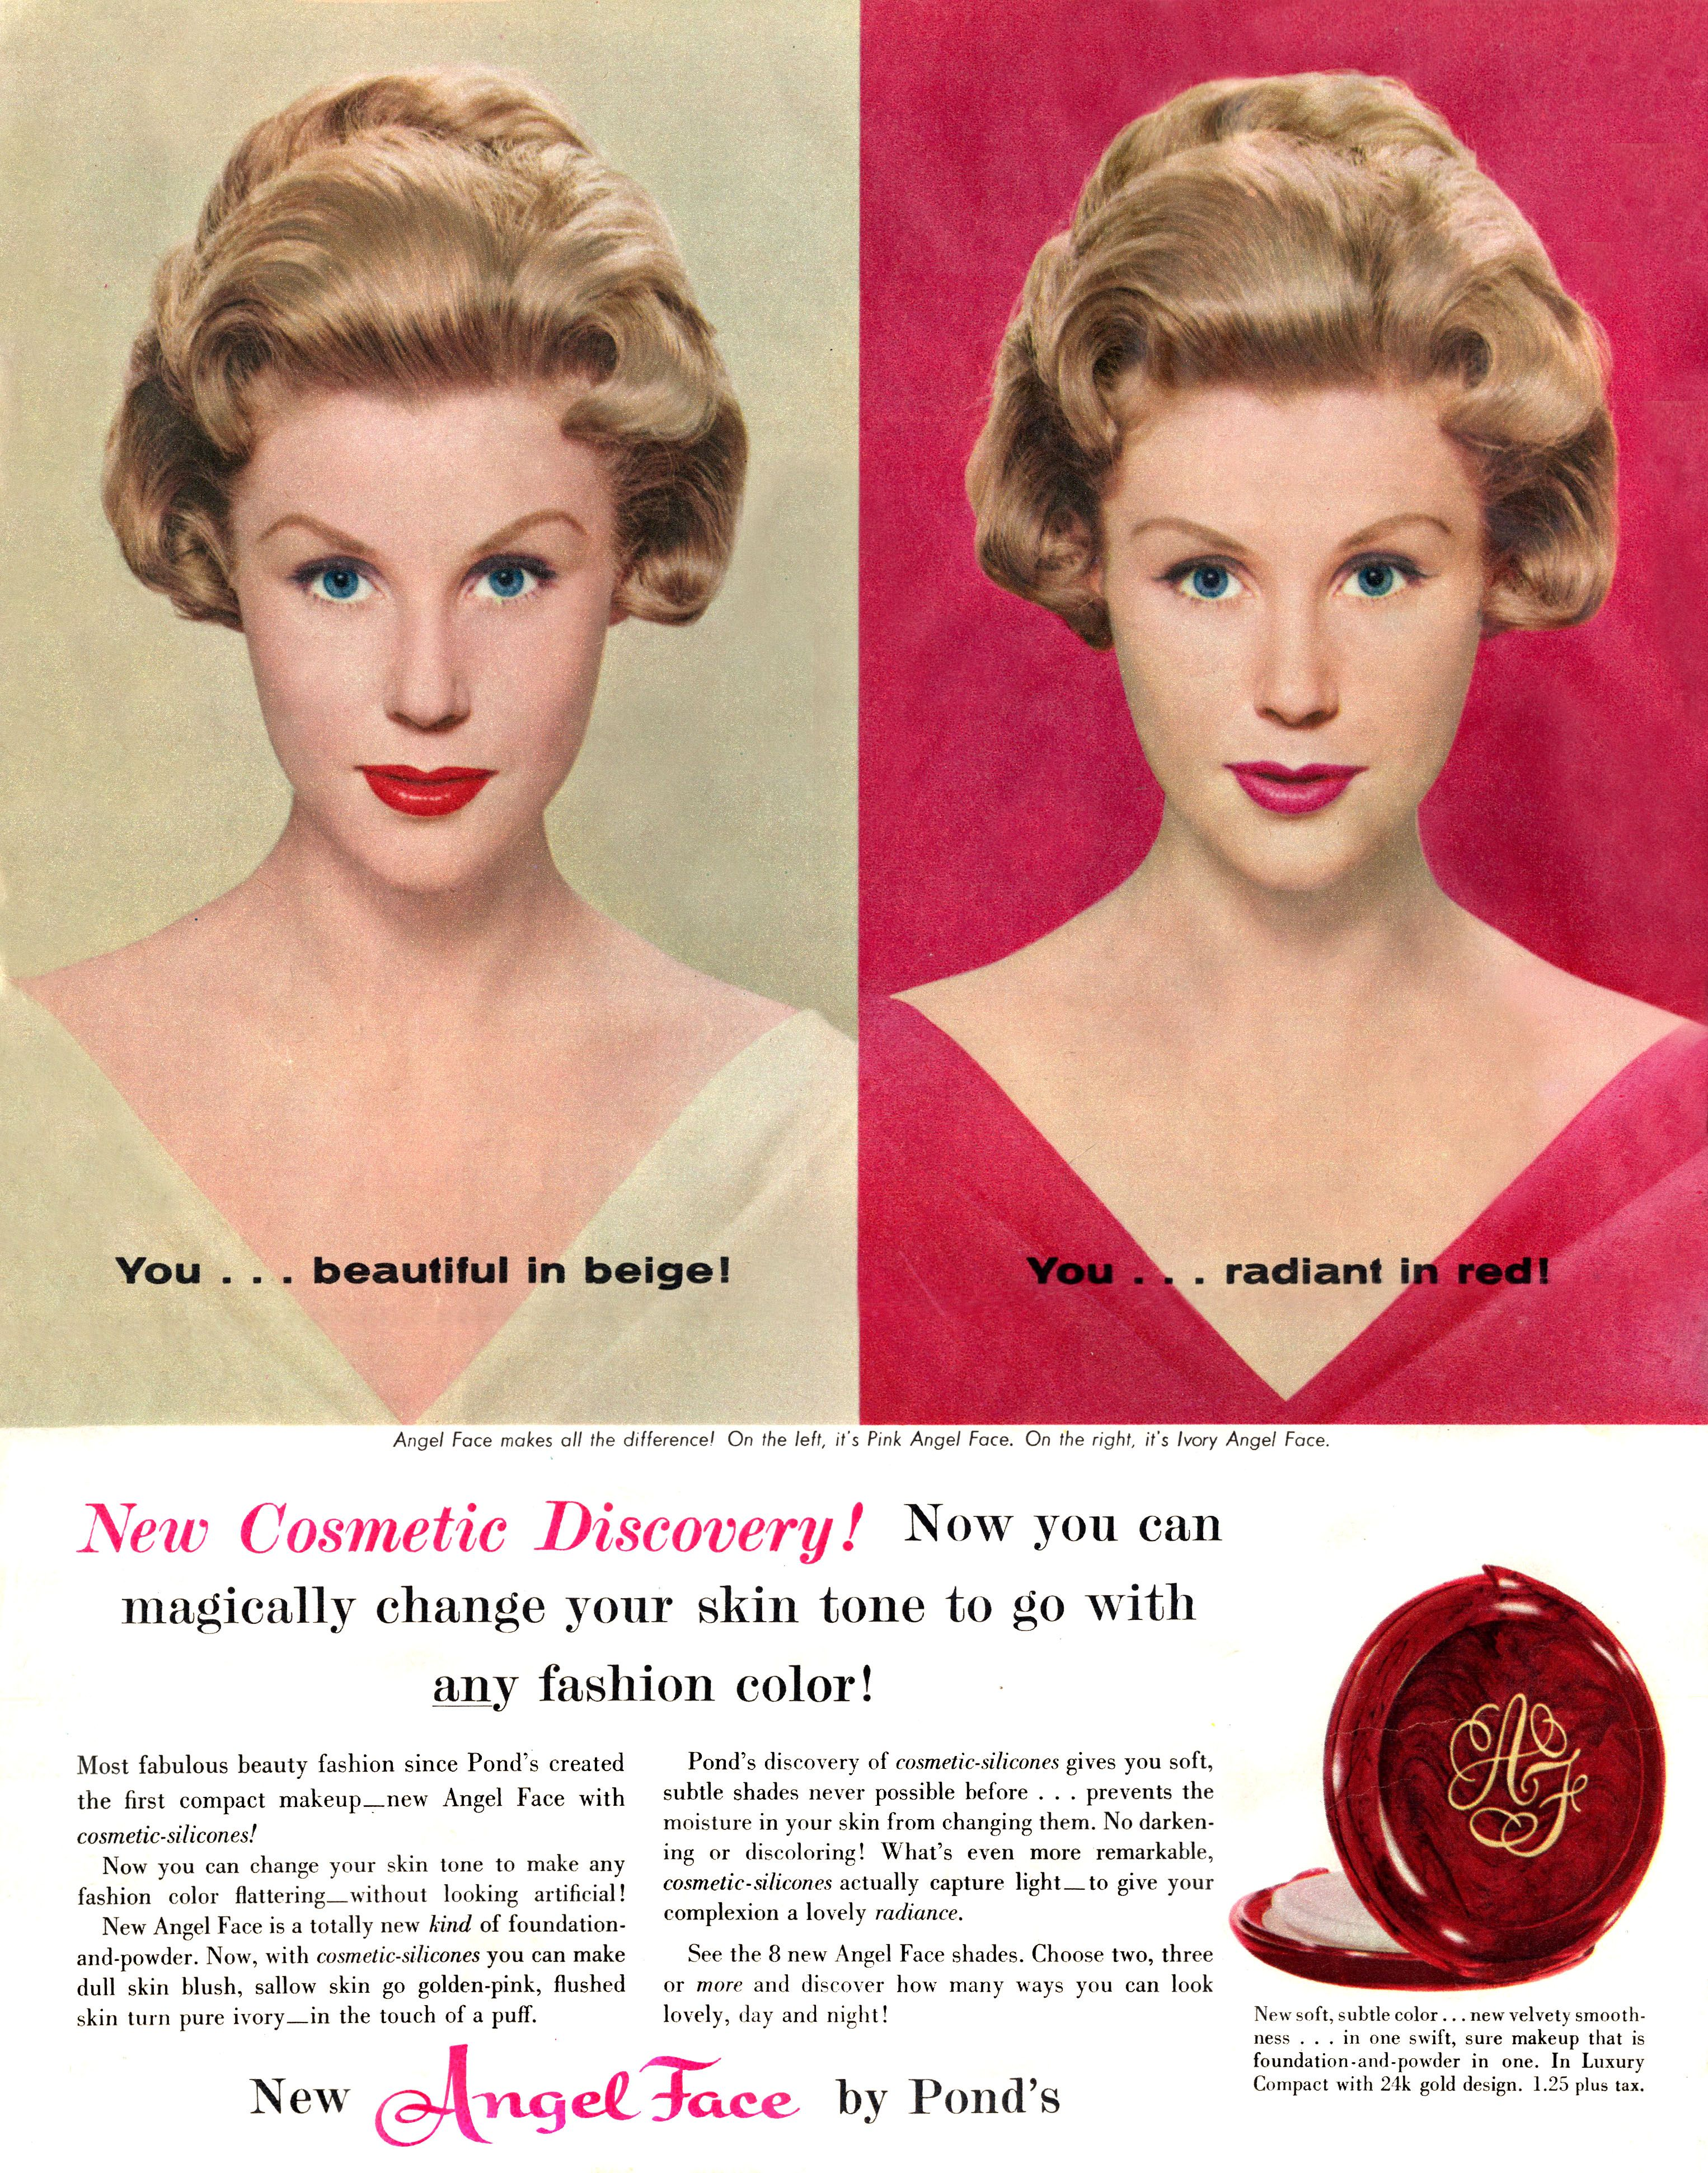 Vintage Pond's Angel Face makeup ad scanned from 1959